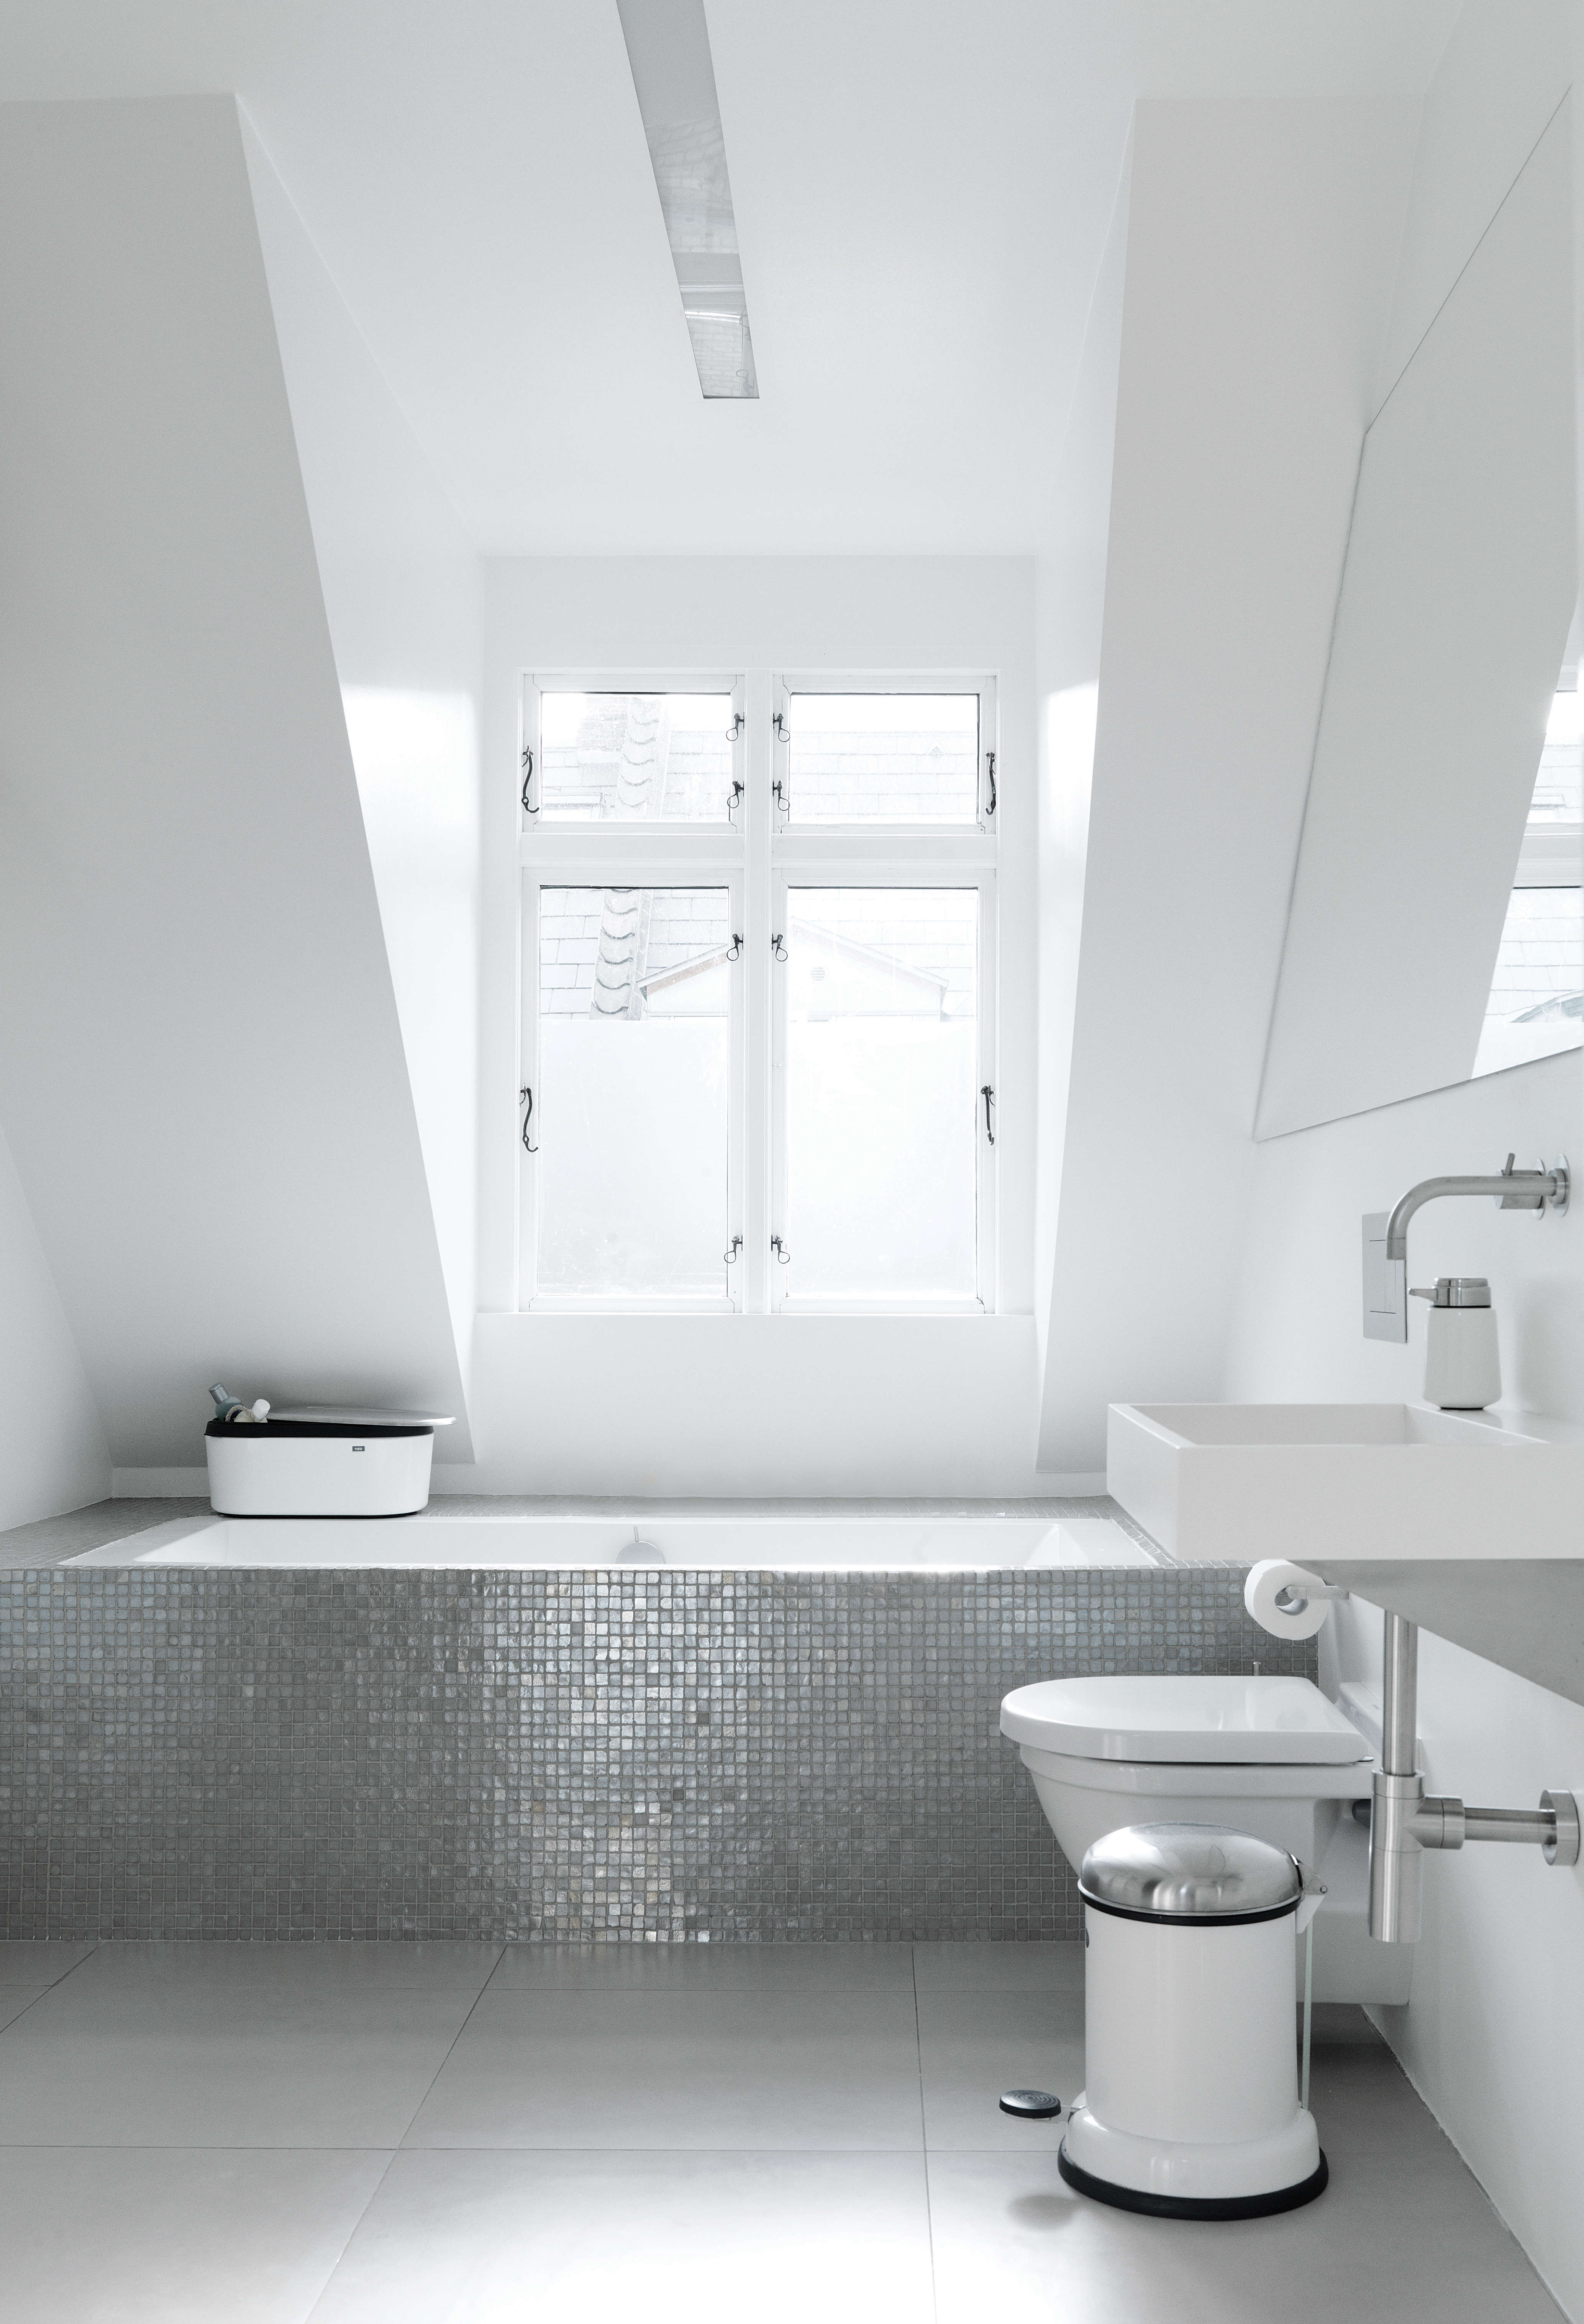 Steal This Look A Blingy Bathroom Vipp Included Remodelista - Remodelista bathroom